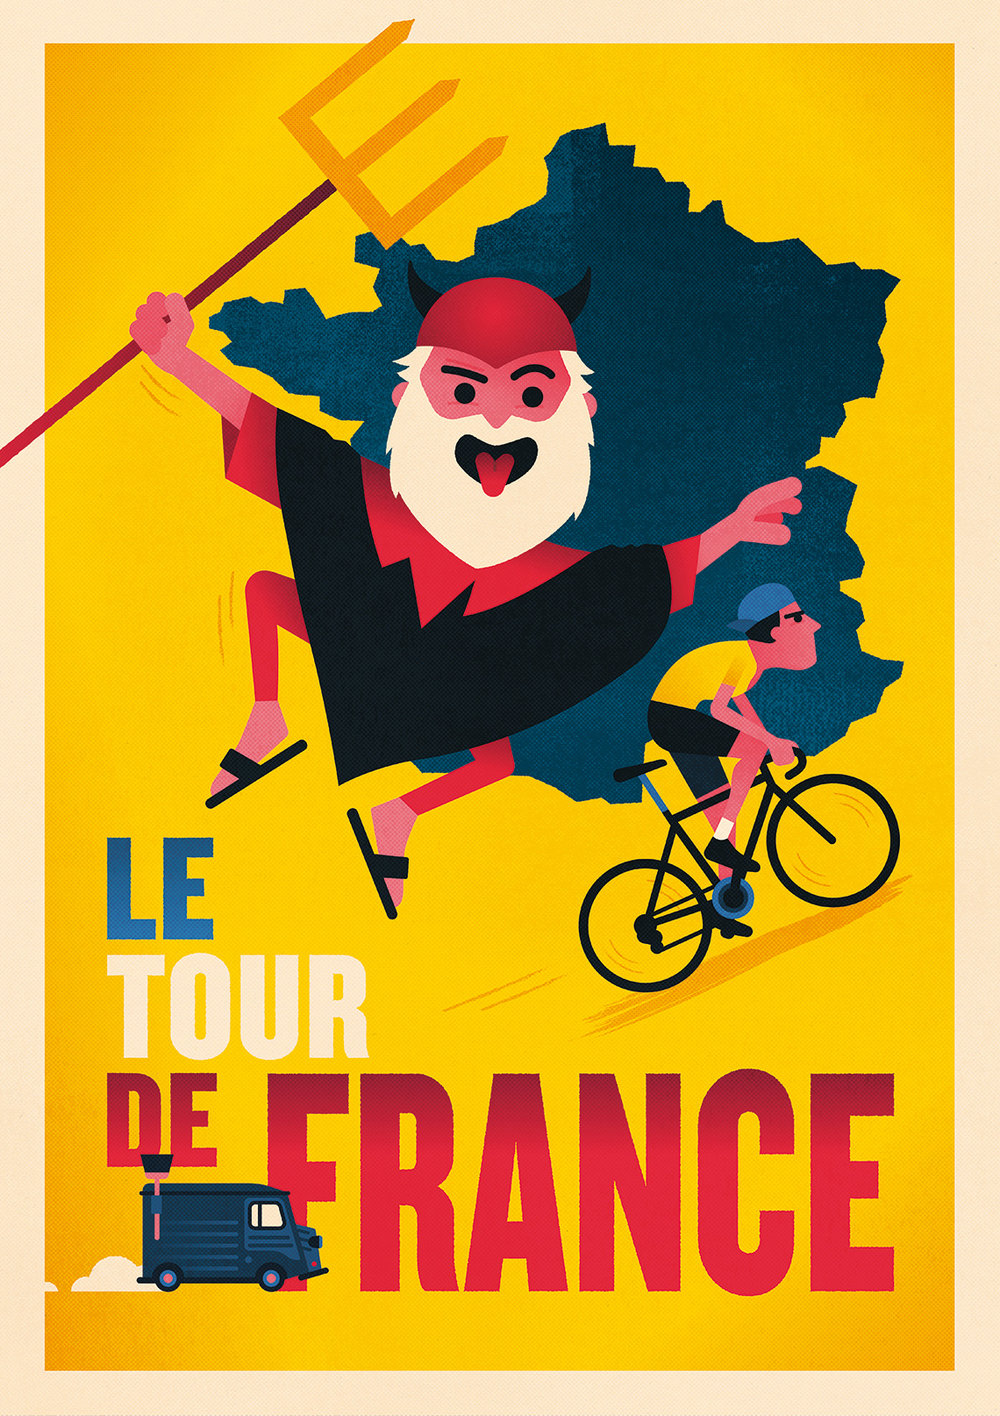 spencerwilson_le_tour_de_france.jpg